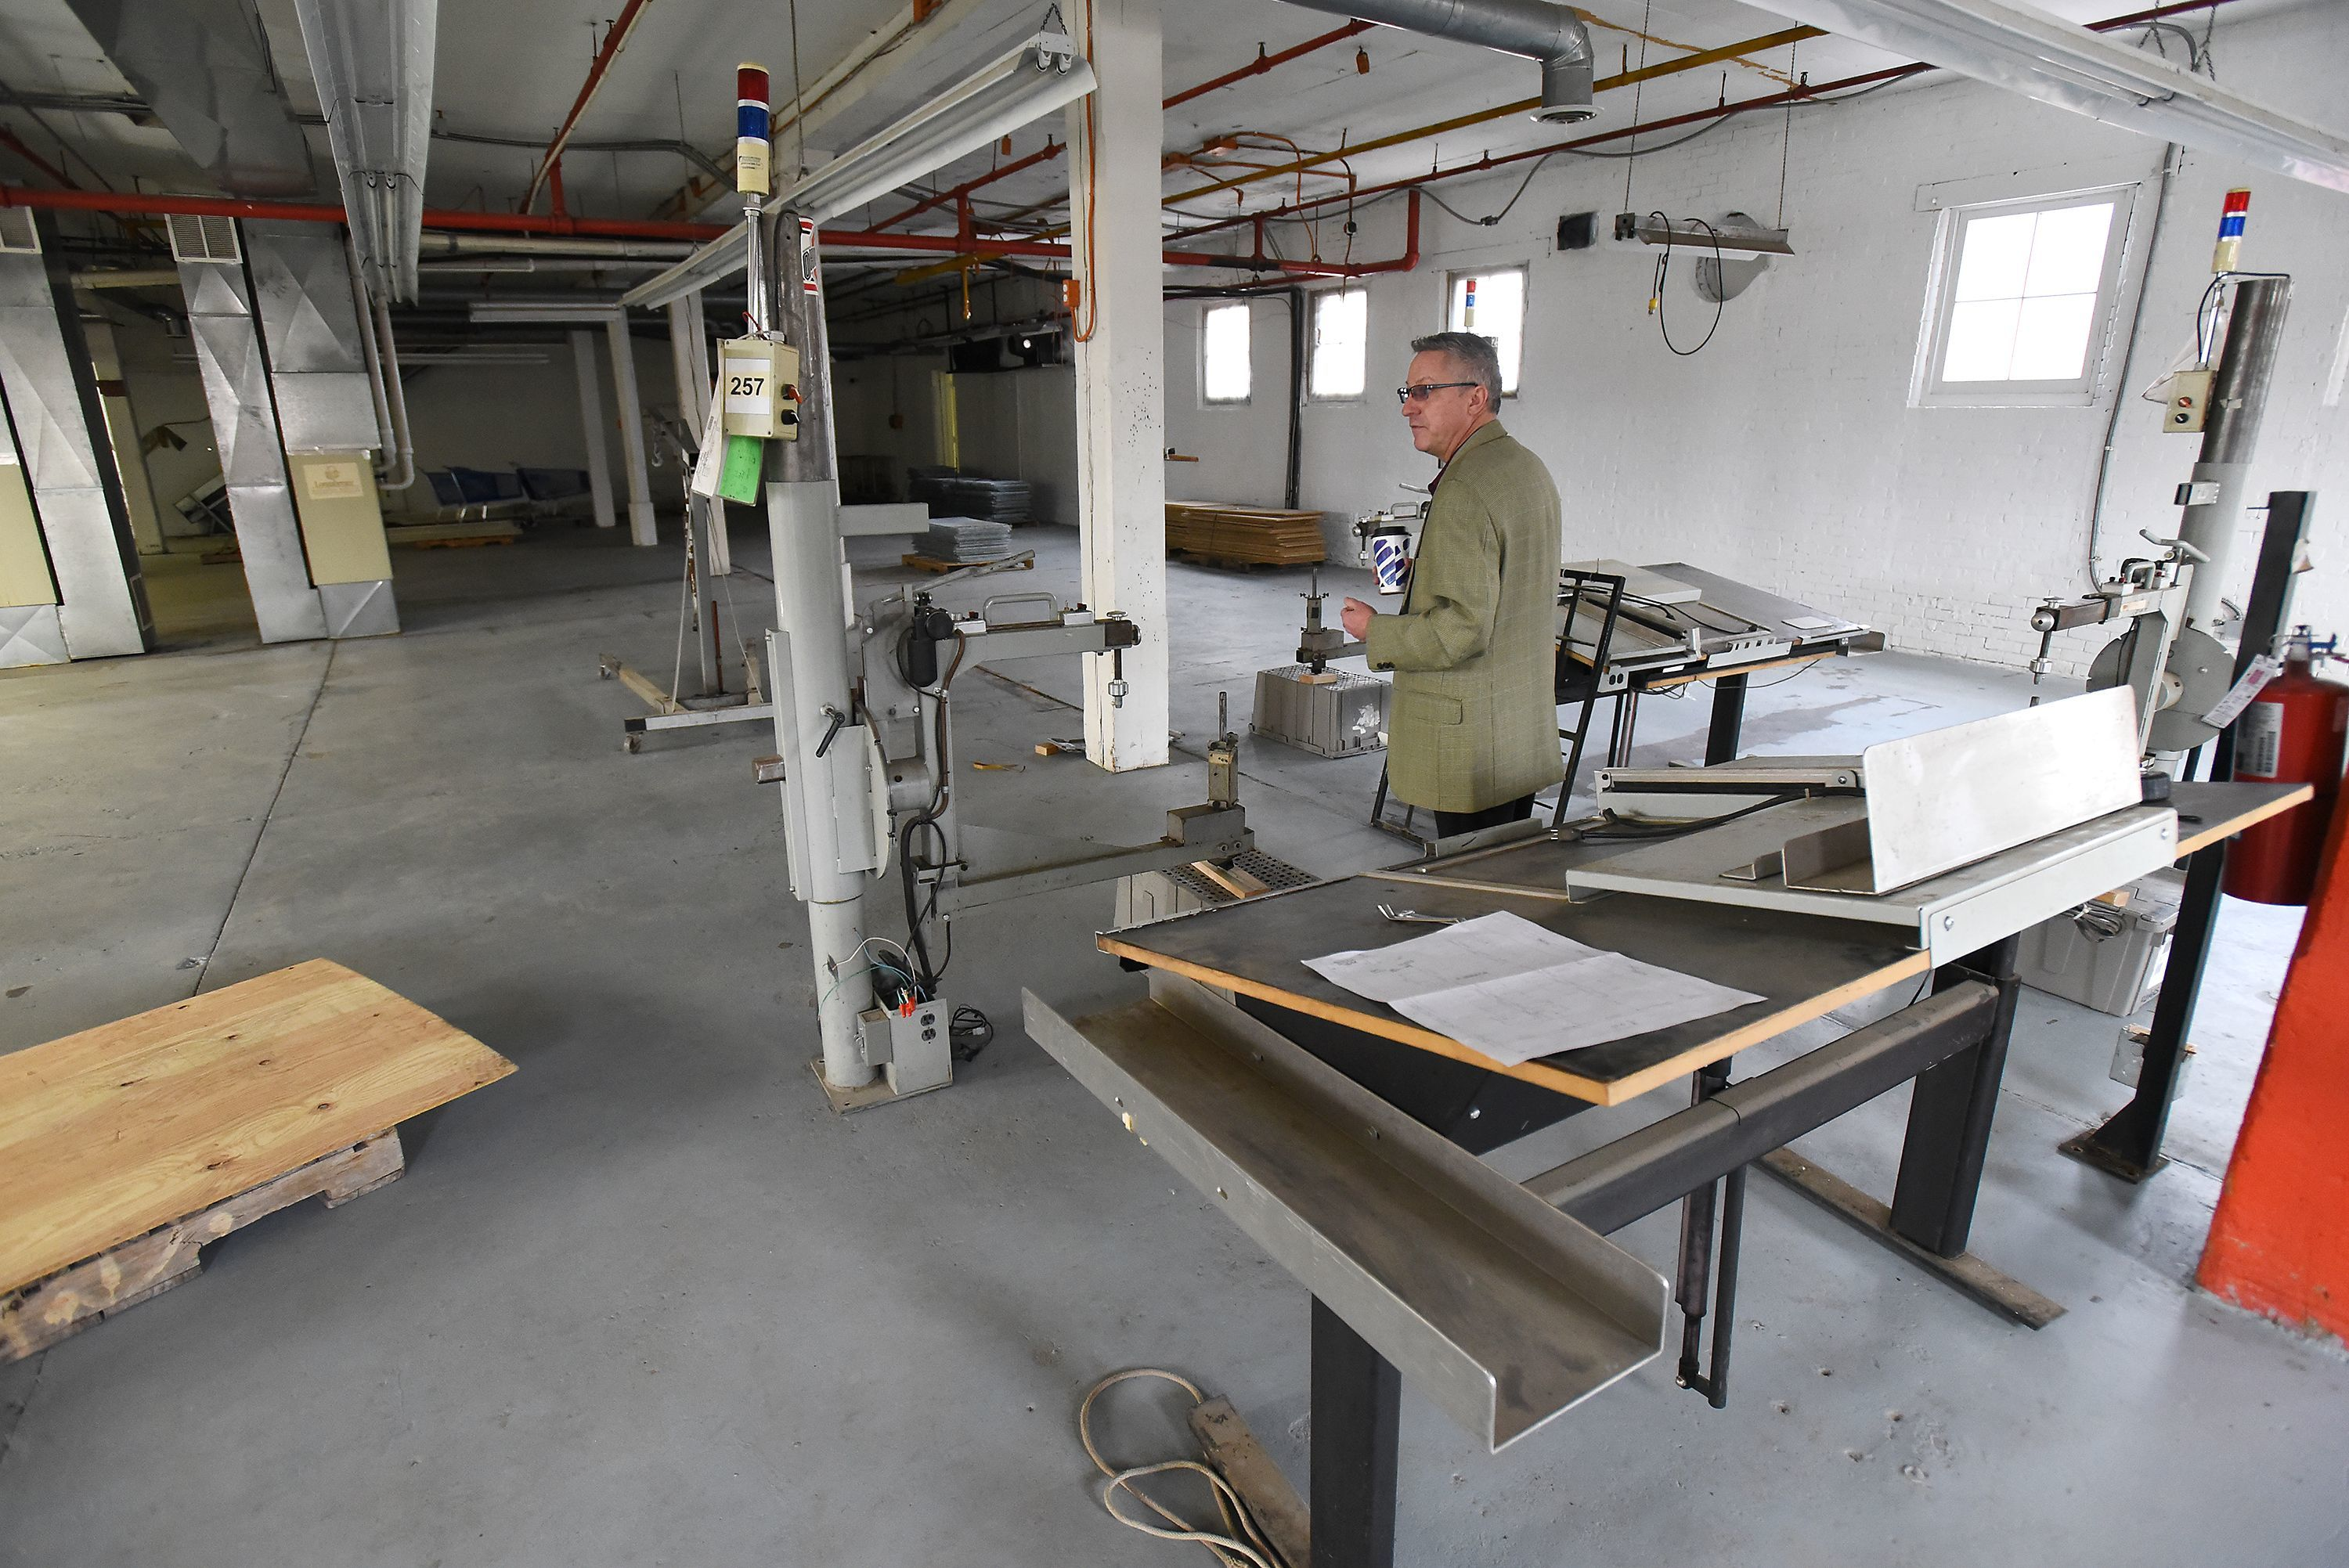 Brenton Baker, President for Marketing, Communications and Events for Longaberger's parent company JRJR Networks, looks at the company's new manufacturing facility in Dresden while equipment is being installed.